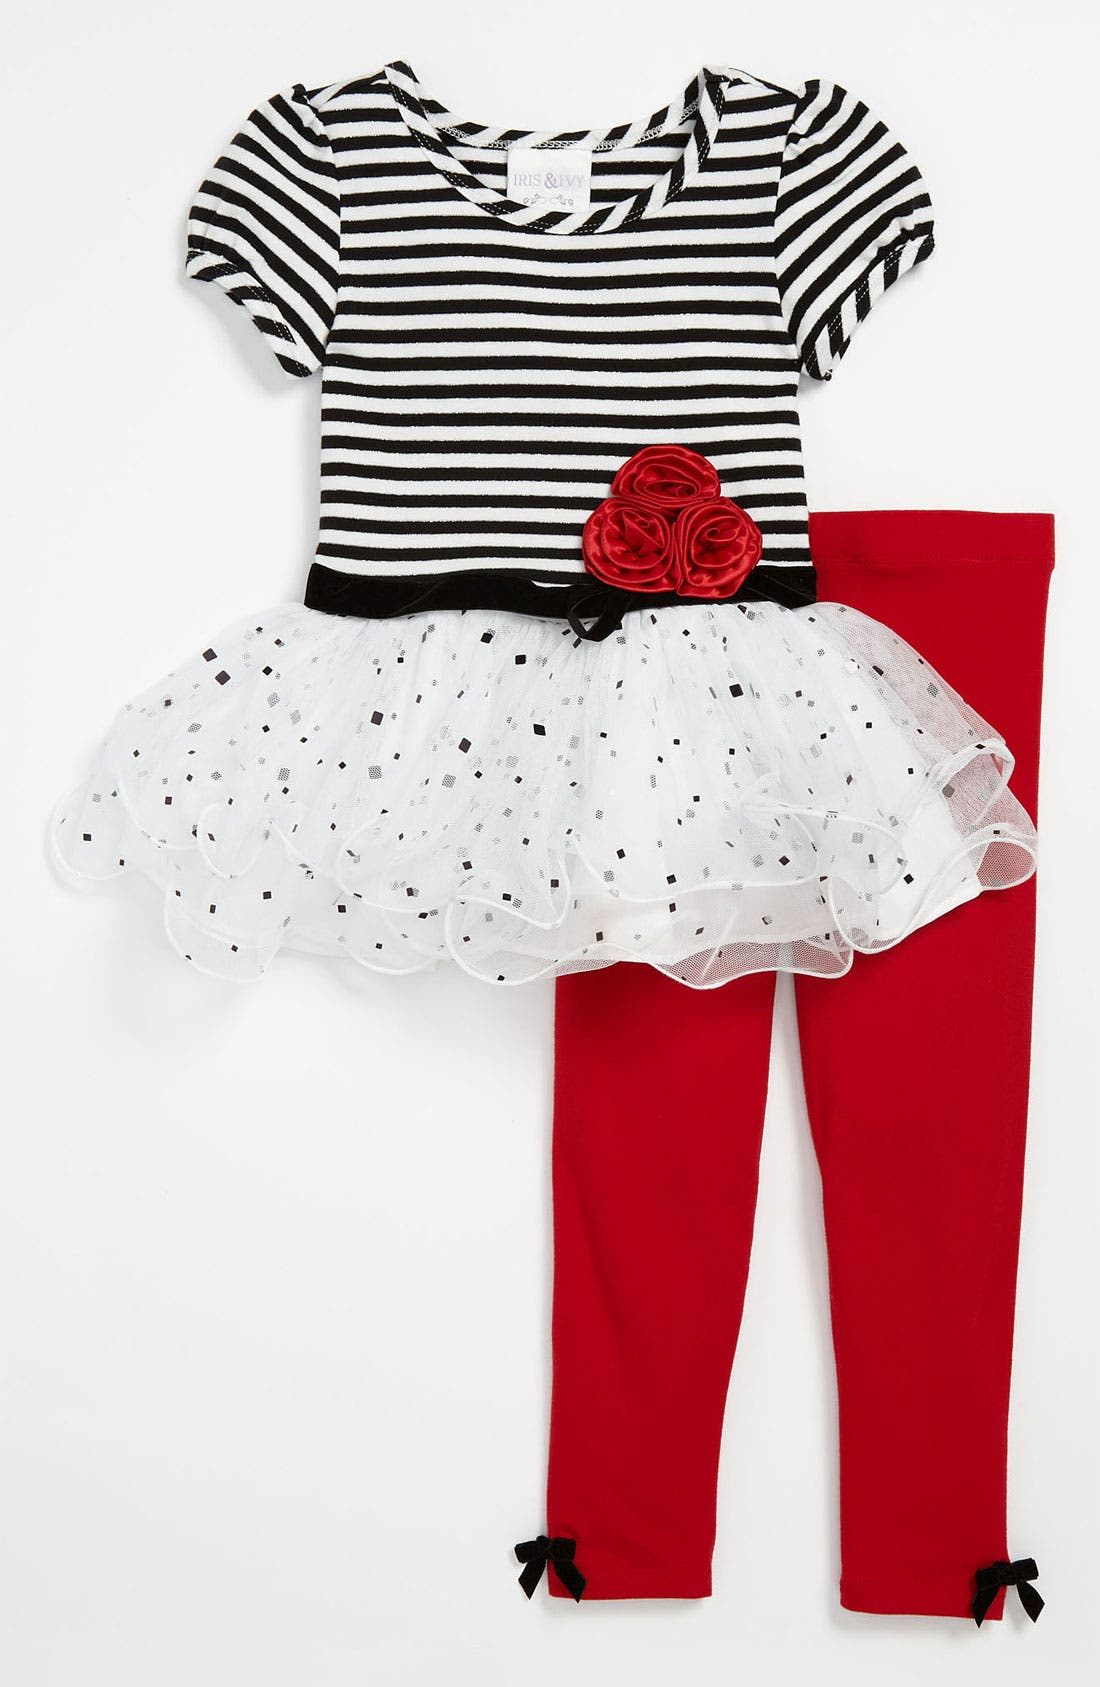 Main Image - Iris & Ivy Stripe Dress & Leggings (Toddler)